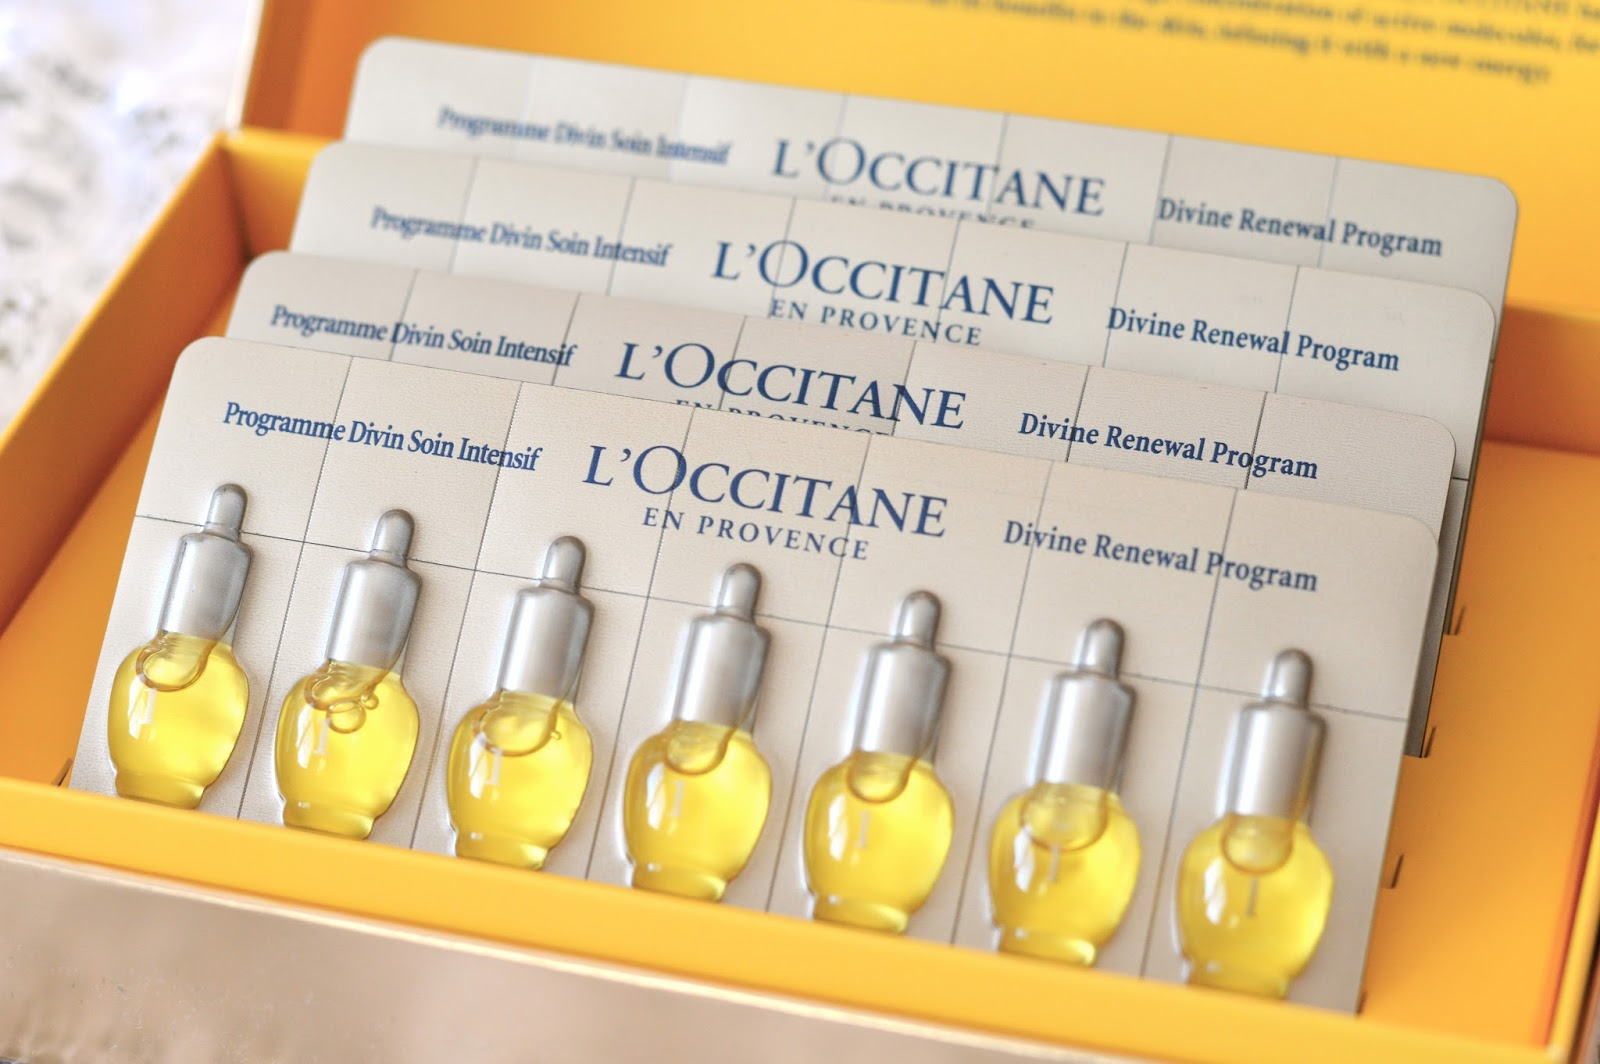 Review: L'Occitane Immortelle Divine Renewal Program